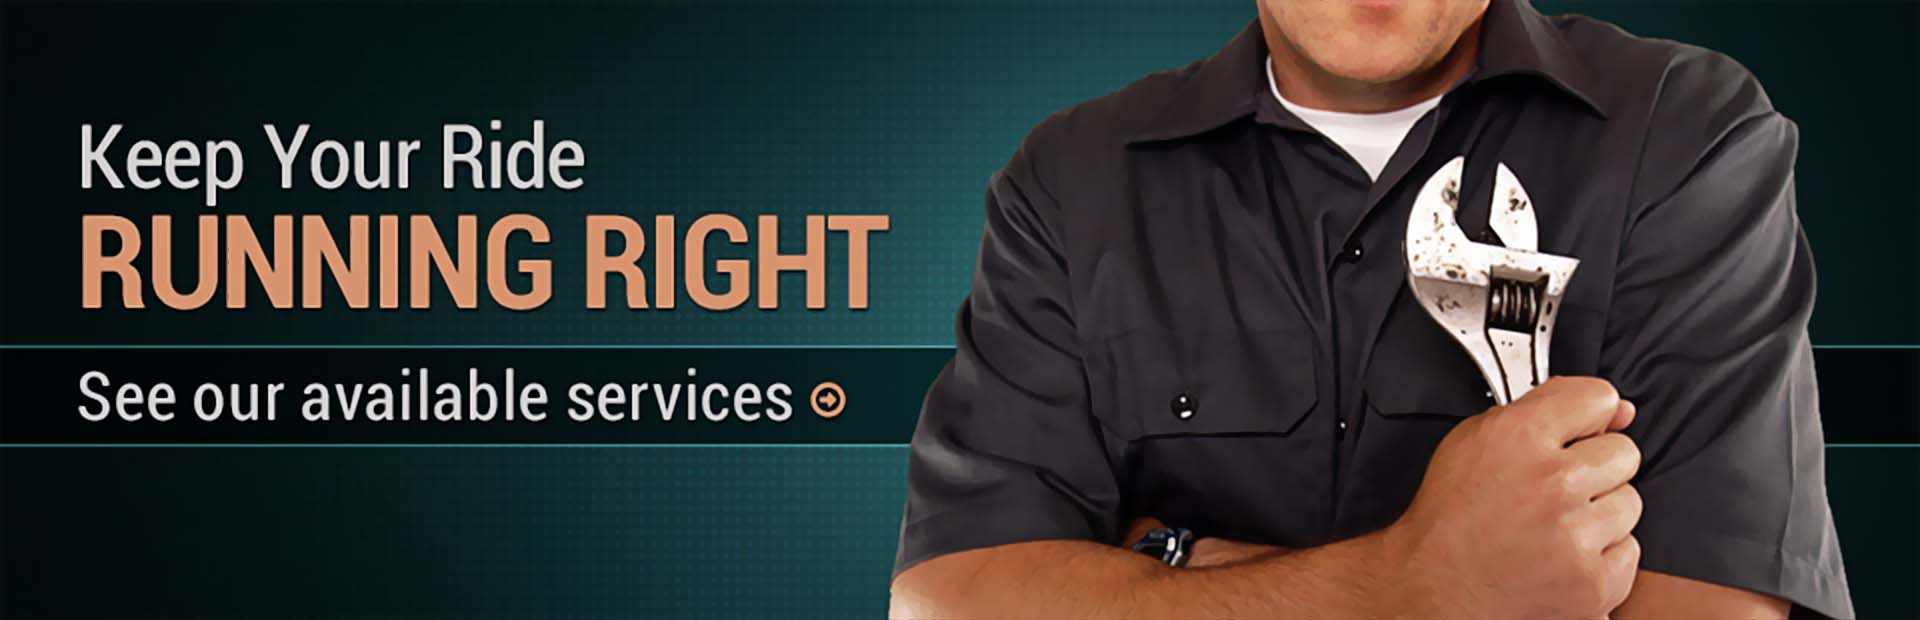 Click here to see our available services.